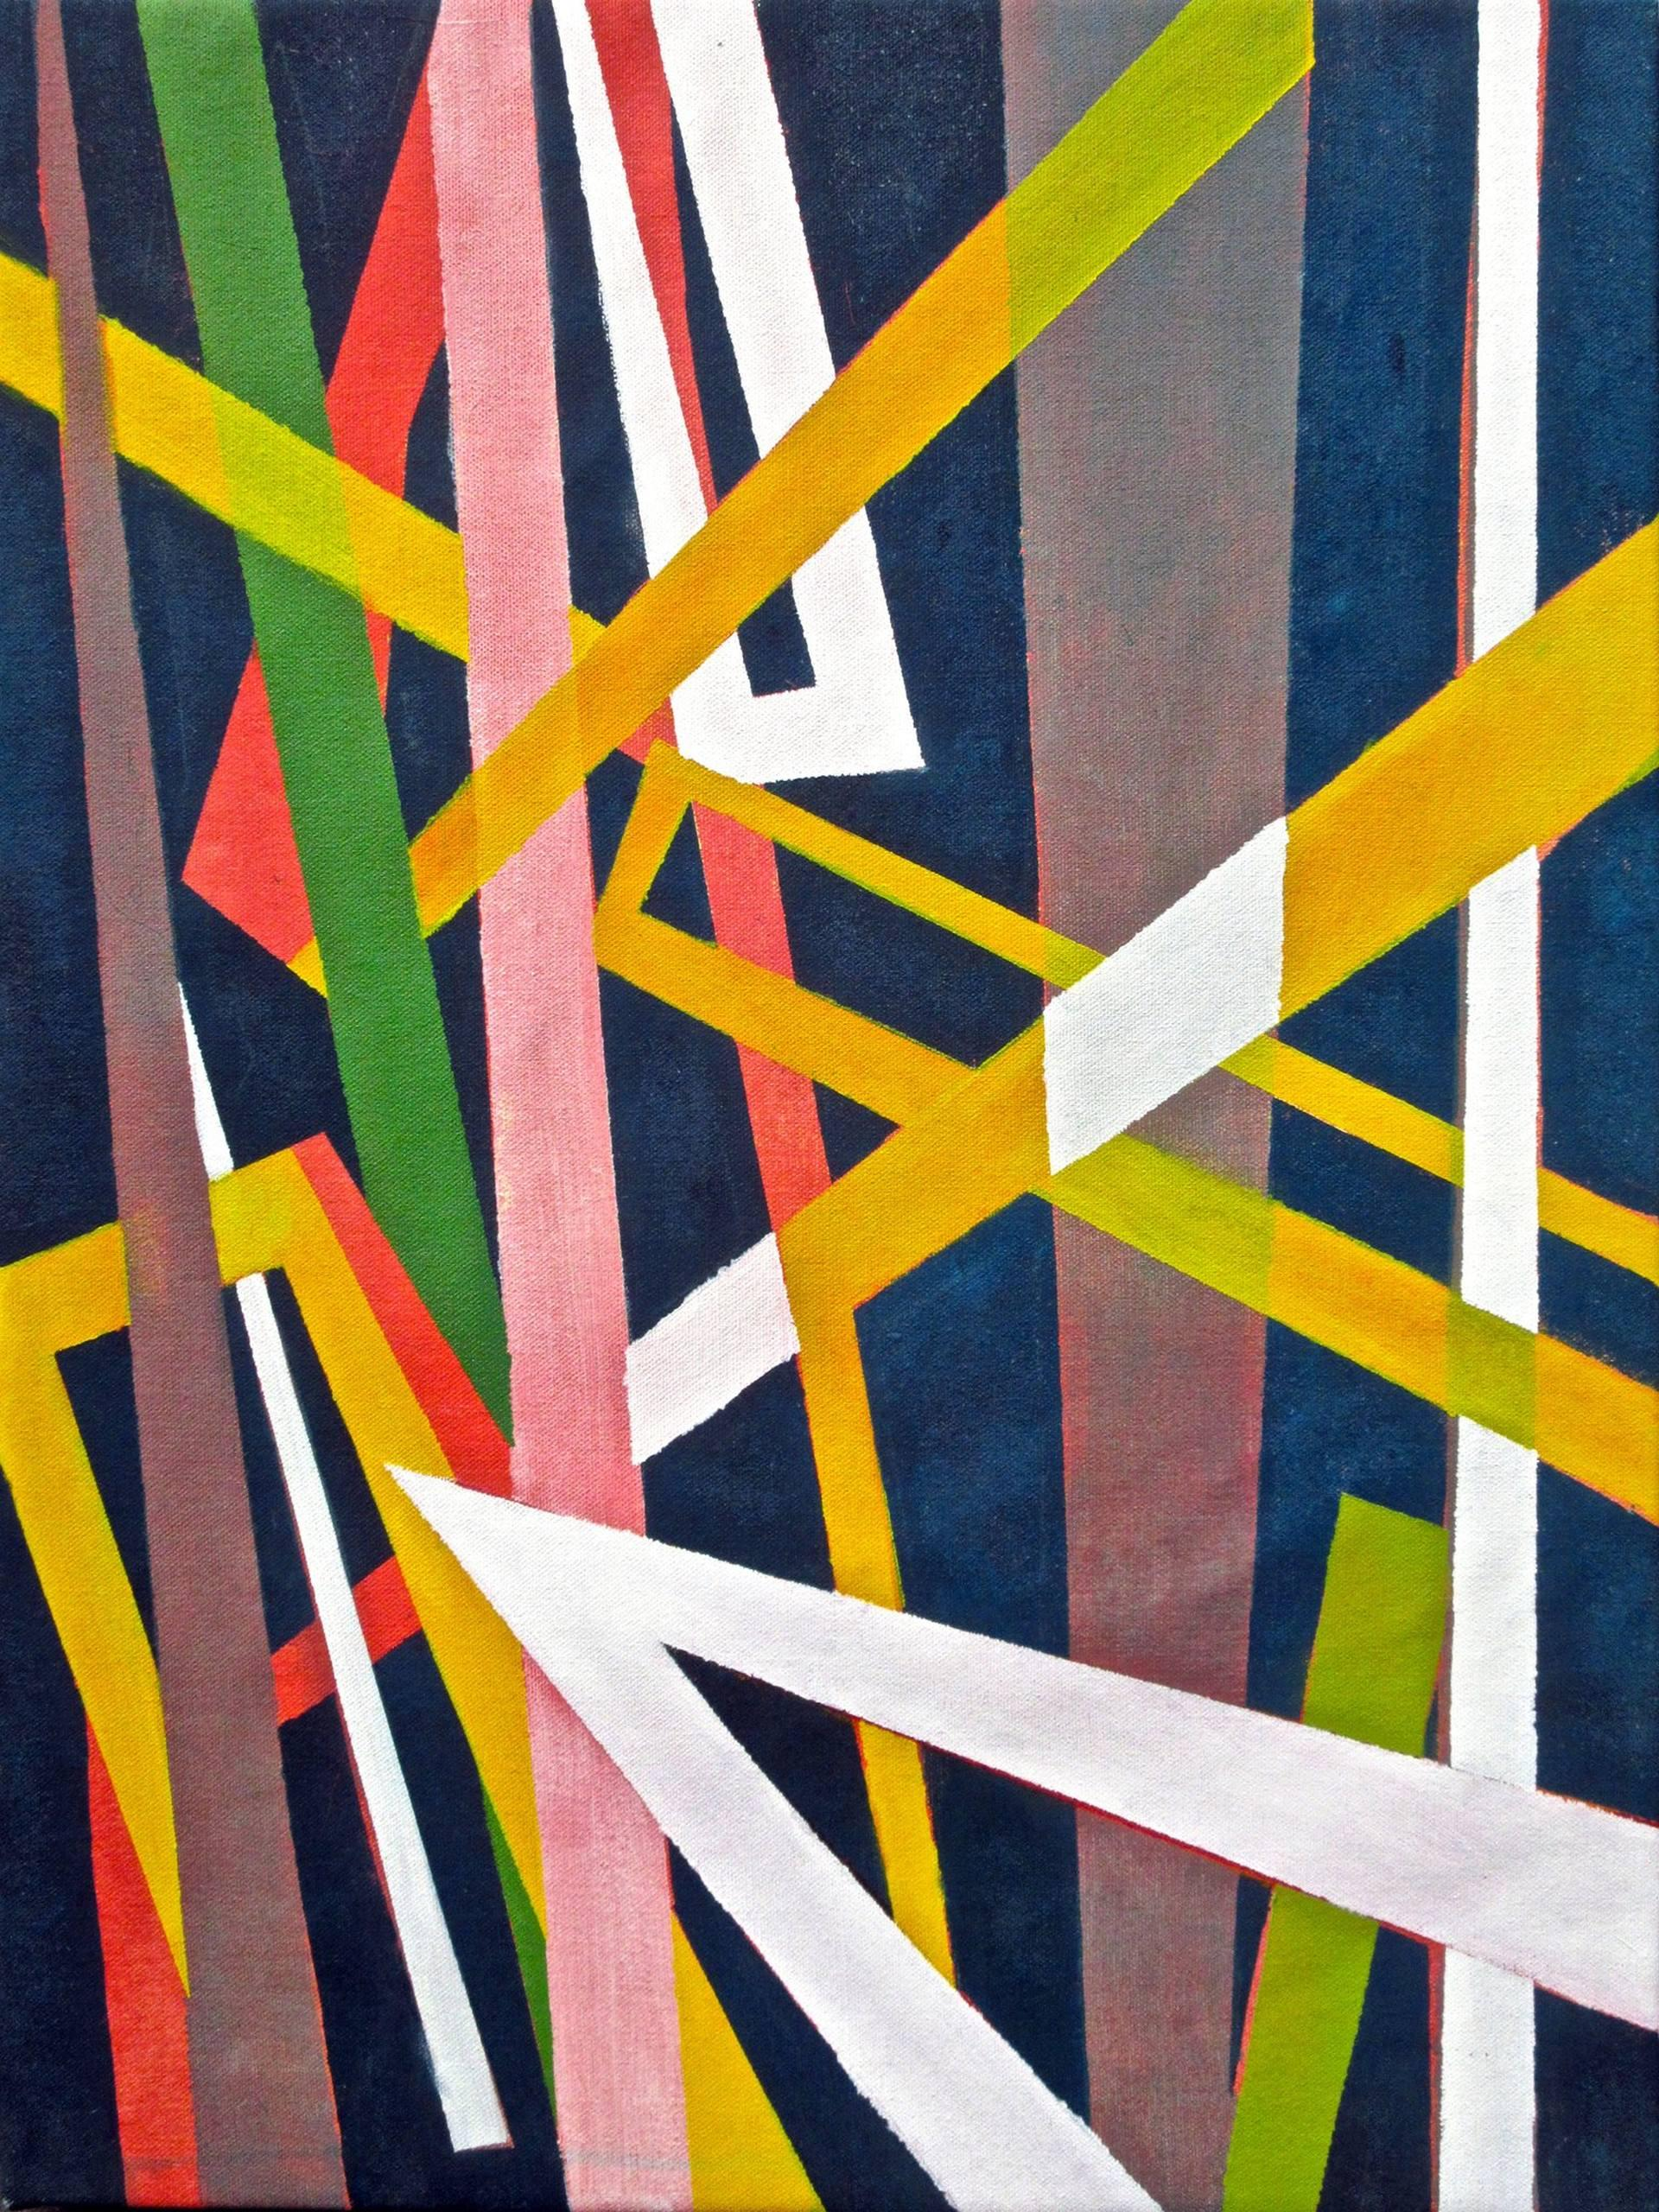 """""""Structure Series #2 V. 2,"""" East Village, Colorful Abstract Geometric Painting"""